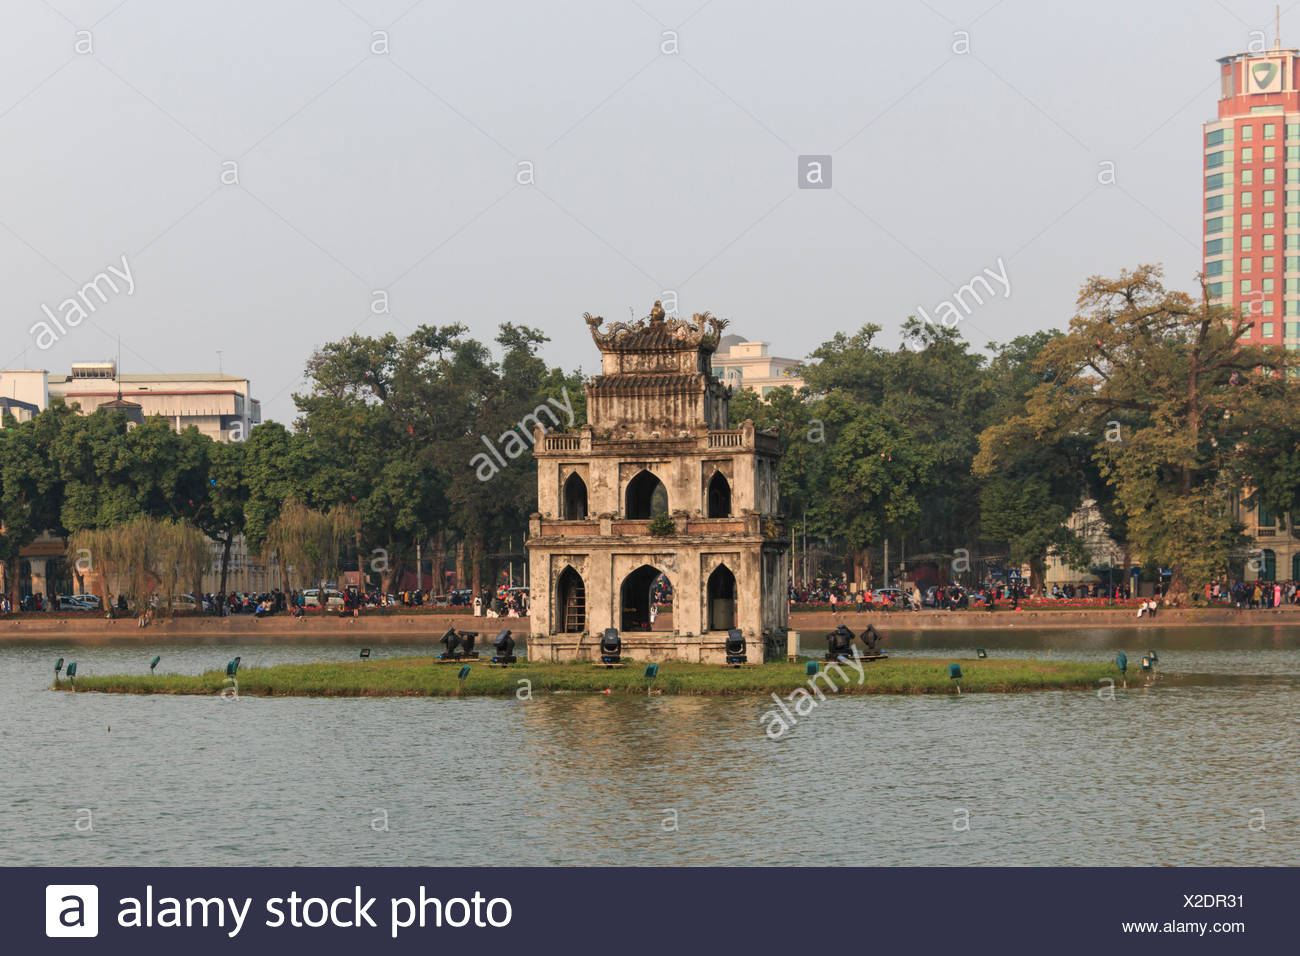 Sunset view of the Hoan Kiem Lake (Lake of the Returned Sword) and the Turtle Tower - Stock Image